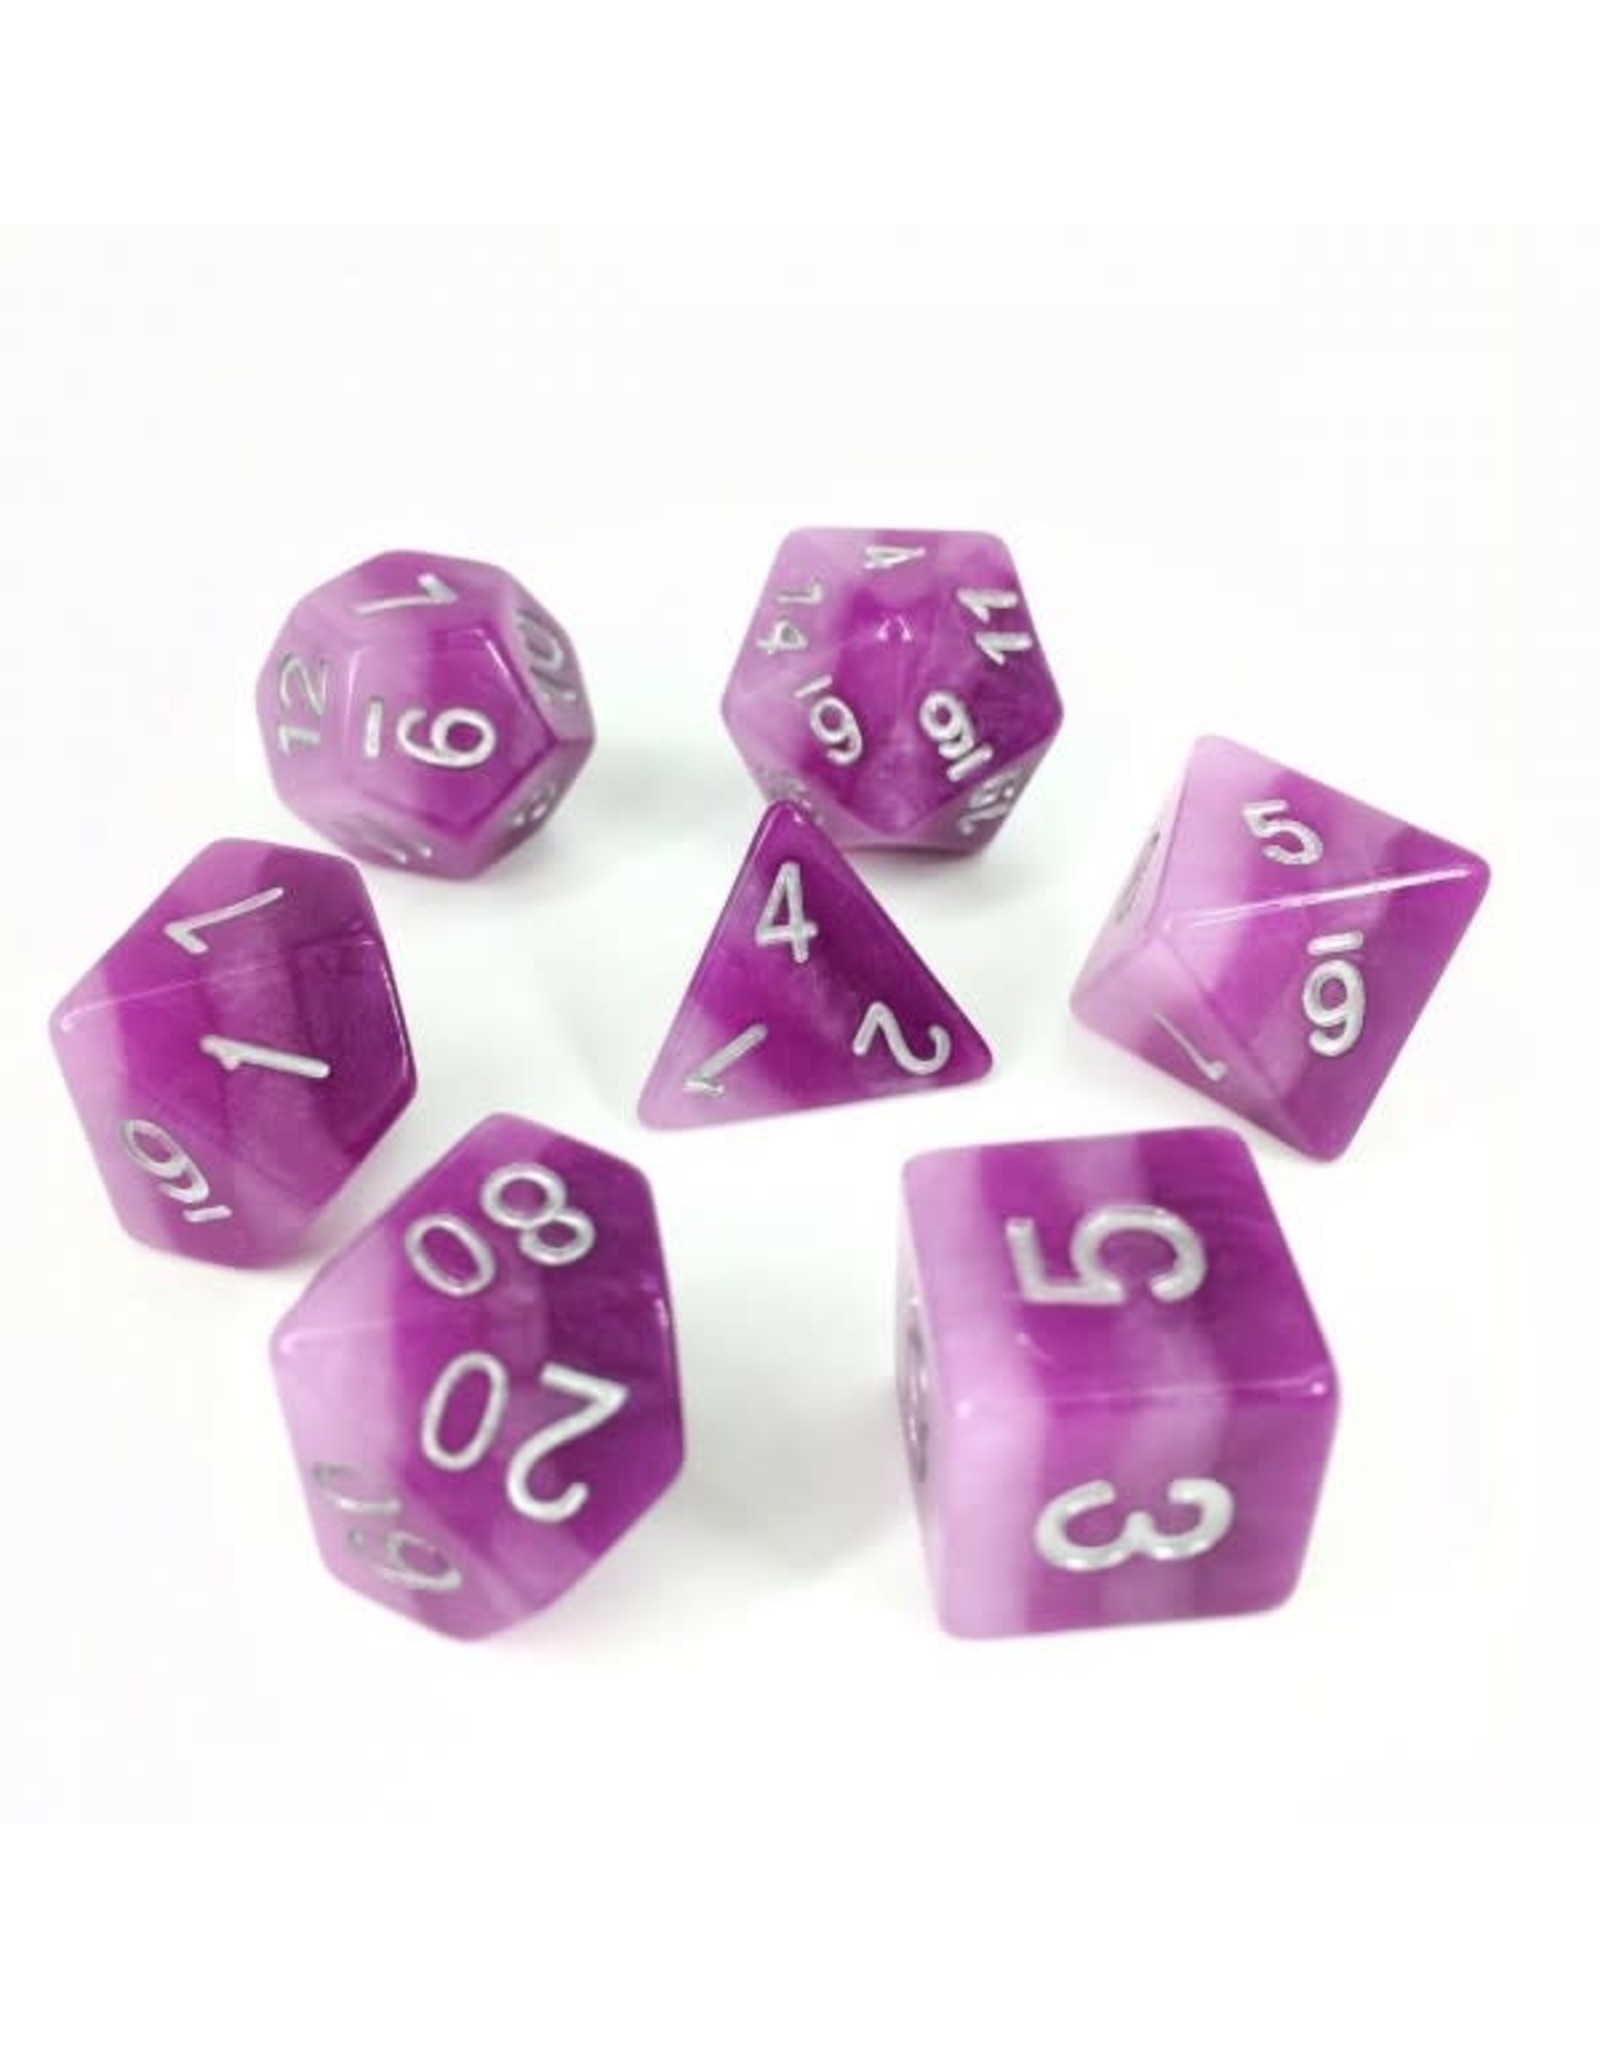 HD Dice Dice: 7-Set Gradient Purple with Silver Numbers (HD)